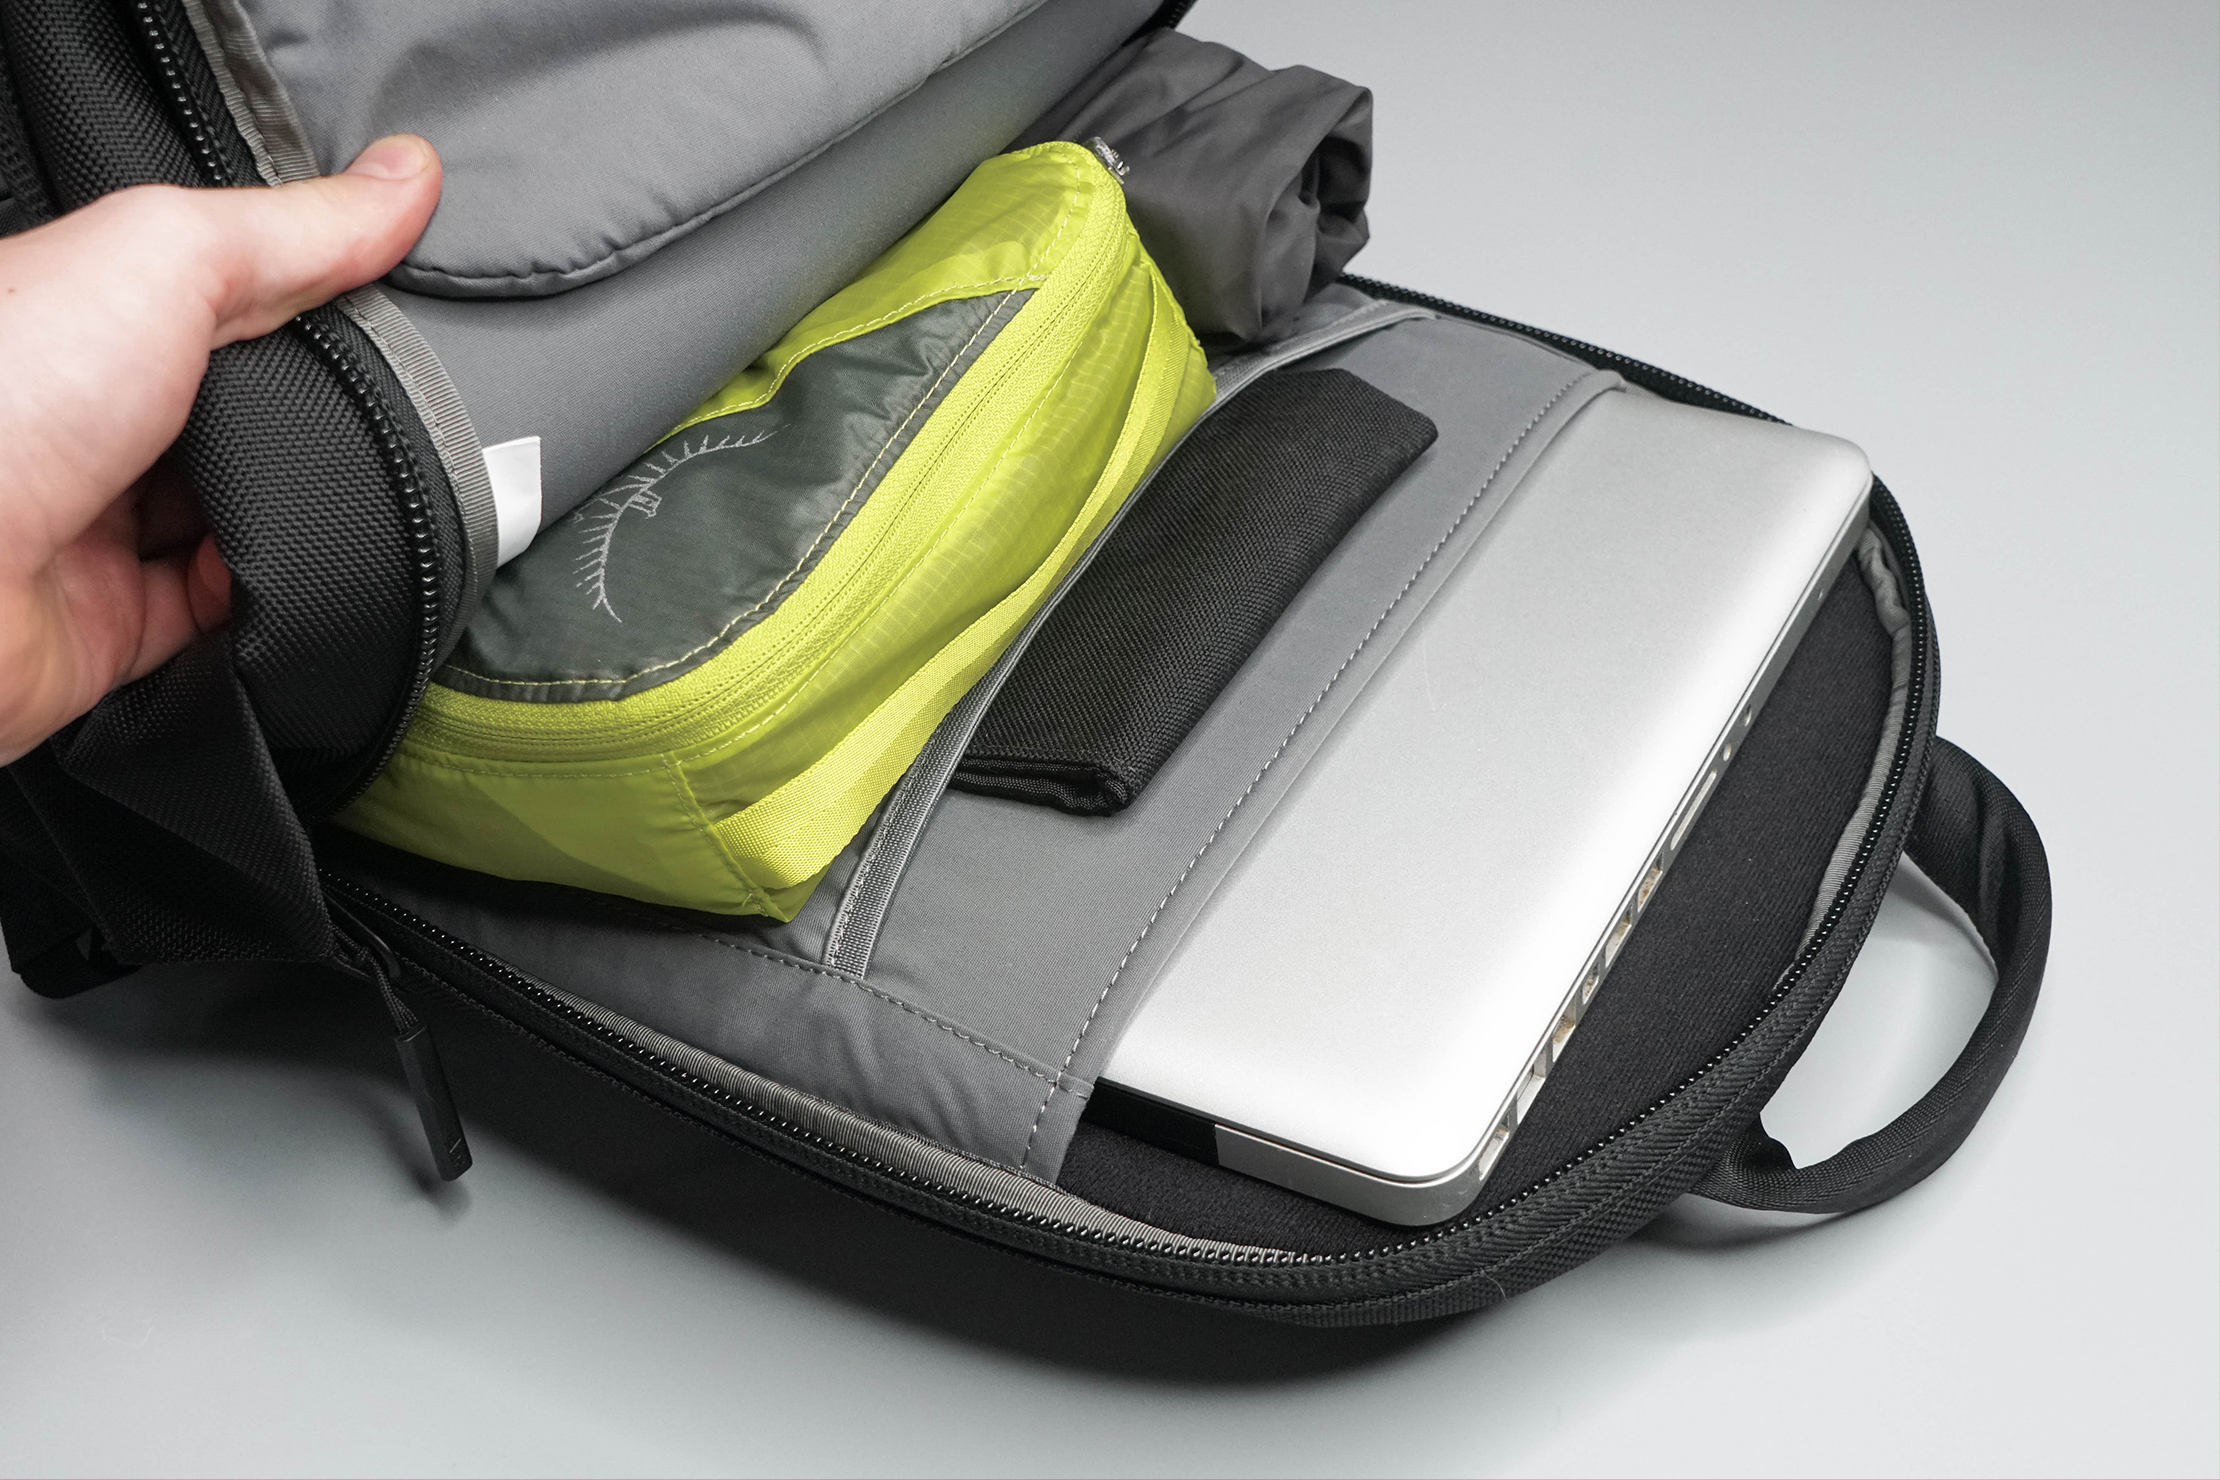 Aer Day Pack 2 Main Compartment